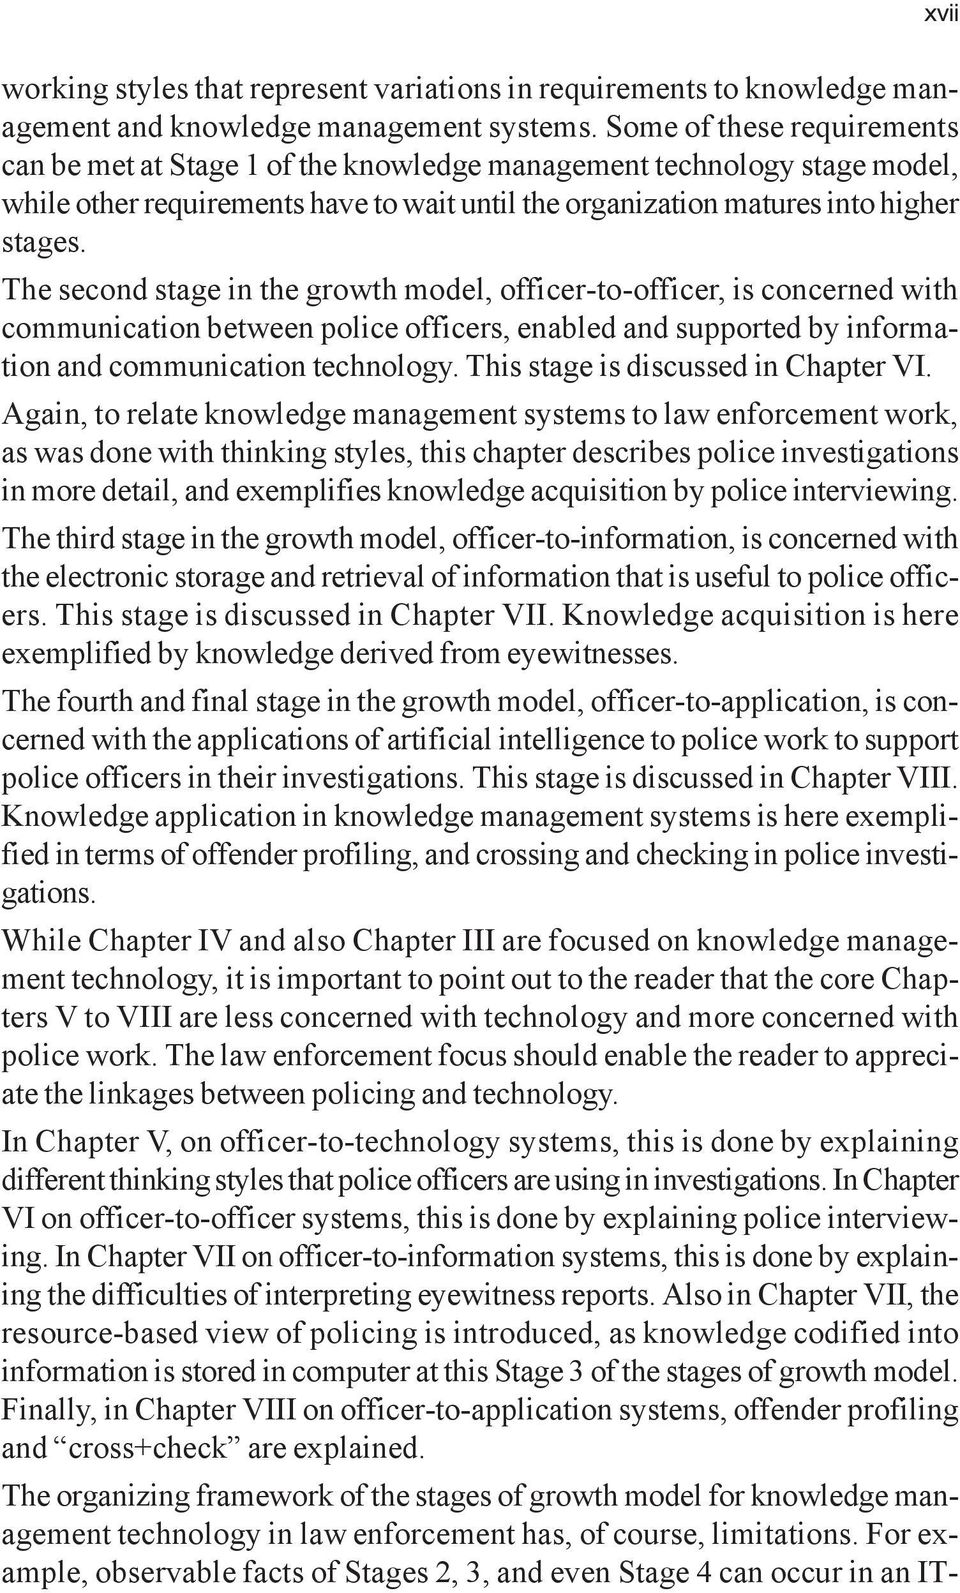 The second stage in the growth model, officer-to-officer, is concerned with communication between police officers, enabled and supported by information and communication technology.